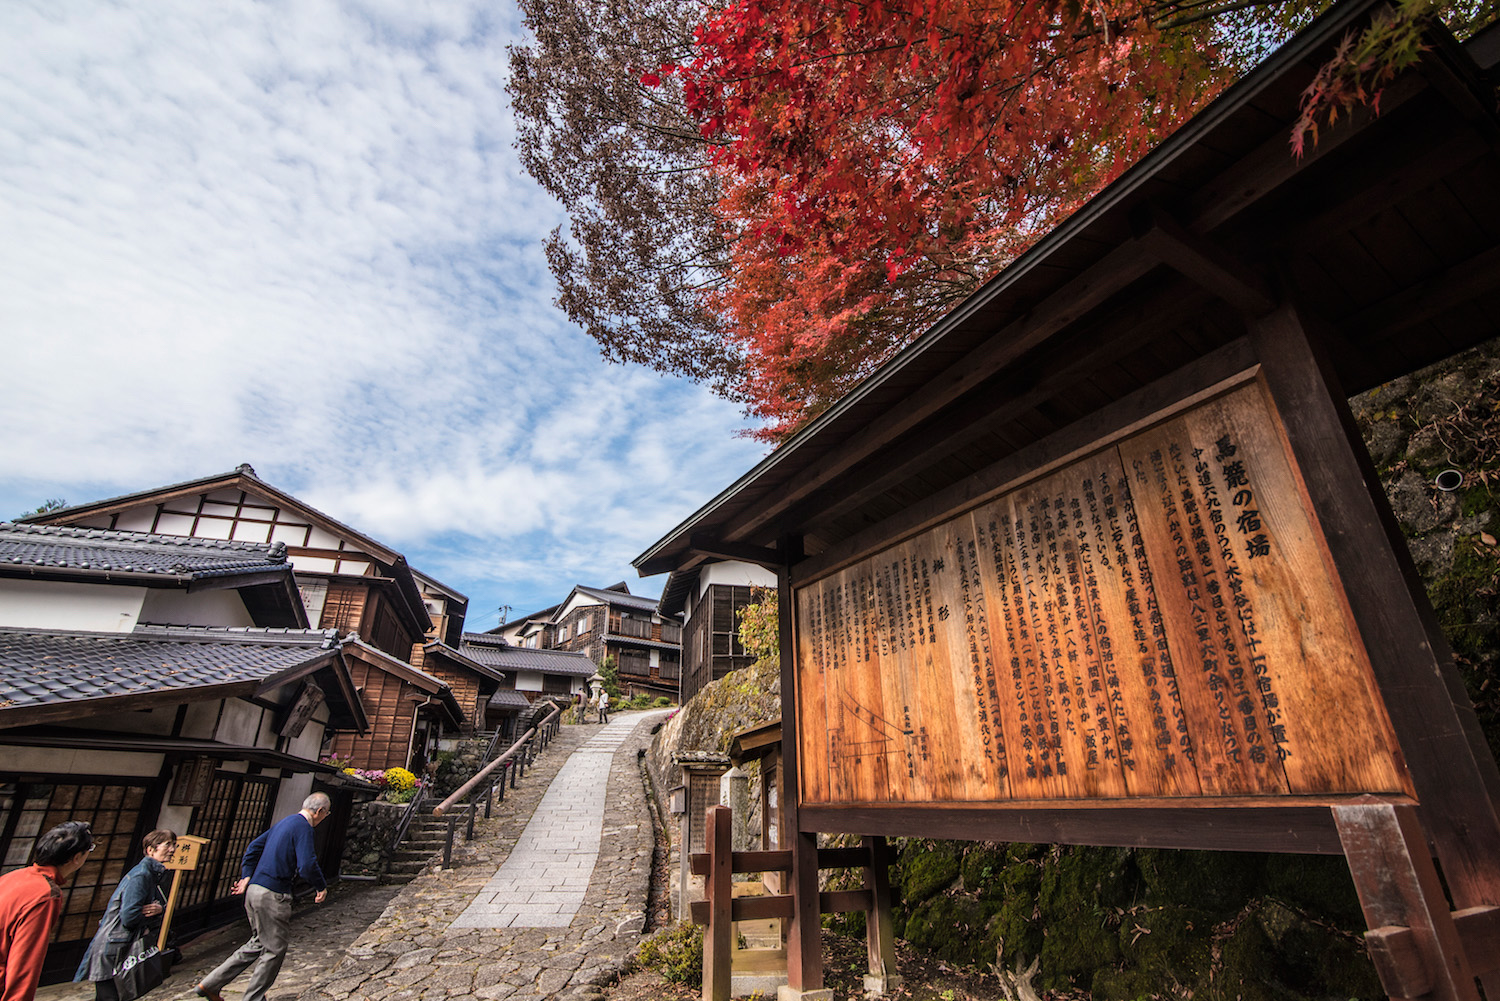 Fall colors in Magome, Japan